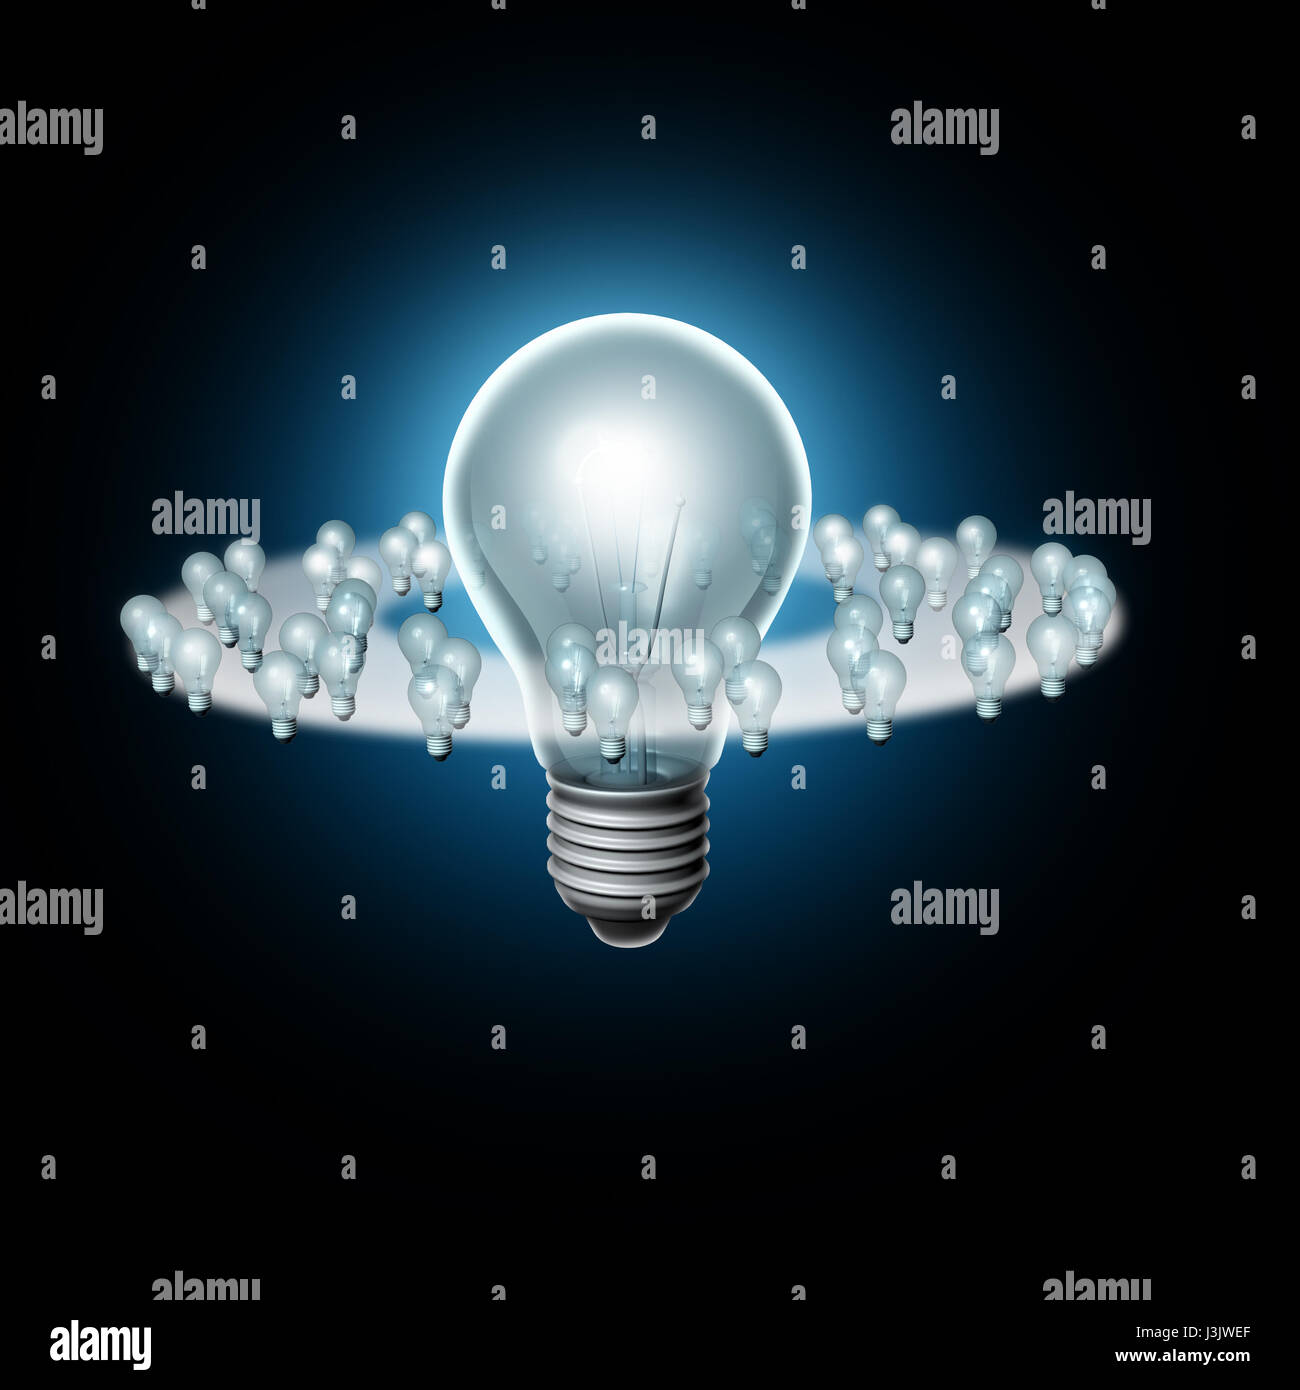 Following a big idea and creative trendsetter or trend setter influence concept as a business marketing metaphor - Stock Image